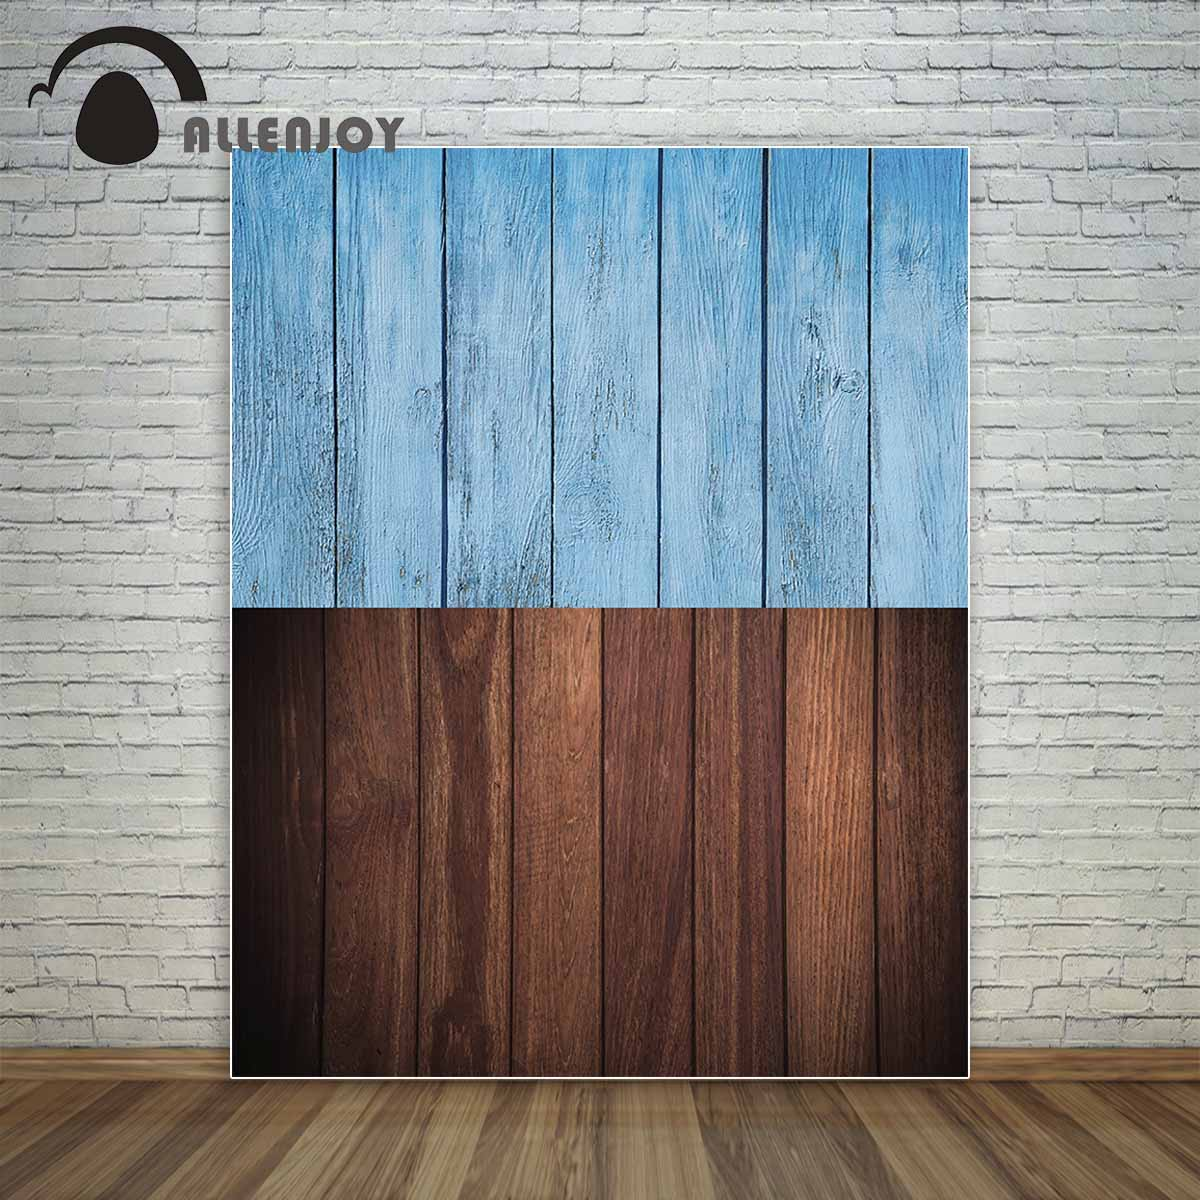 Allenjoy blue wood and brown wood board for little objects easter backdrop backdrop for a photo shoot photo booth